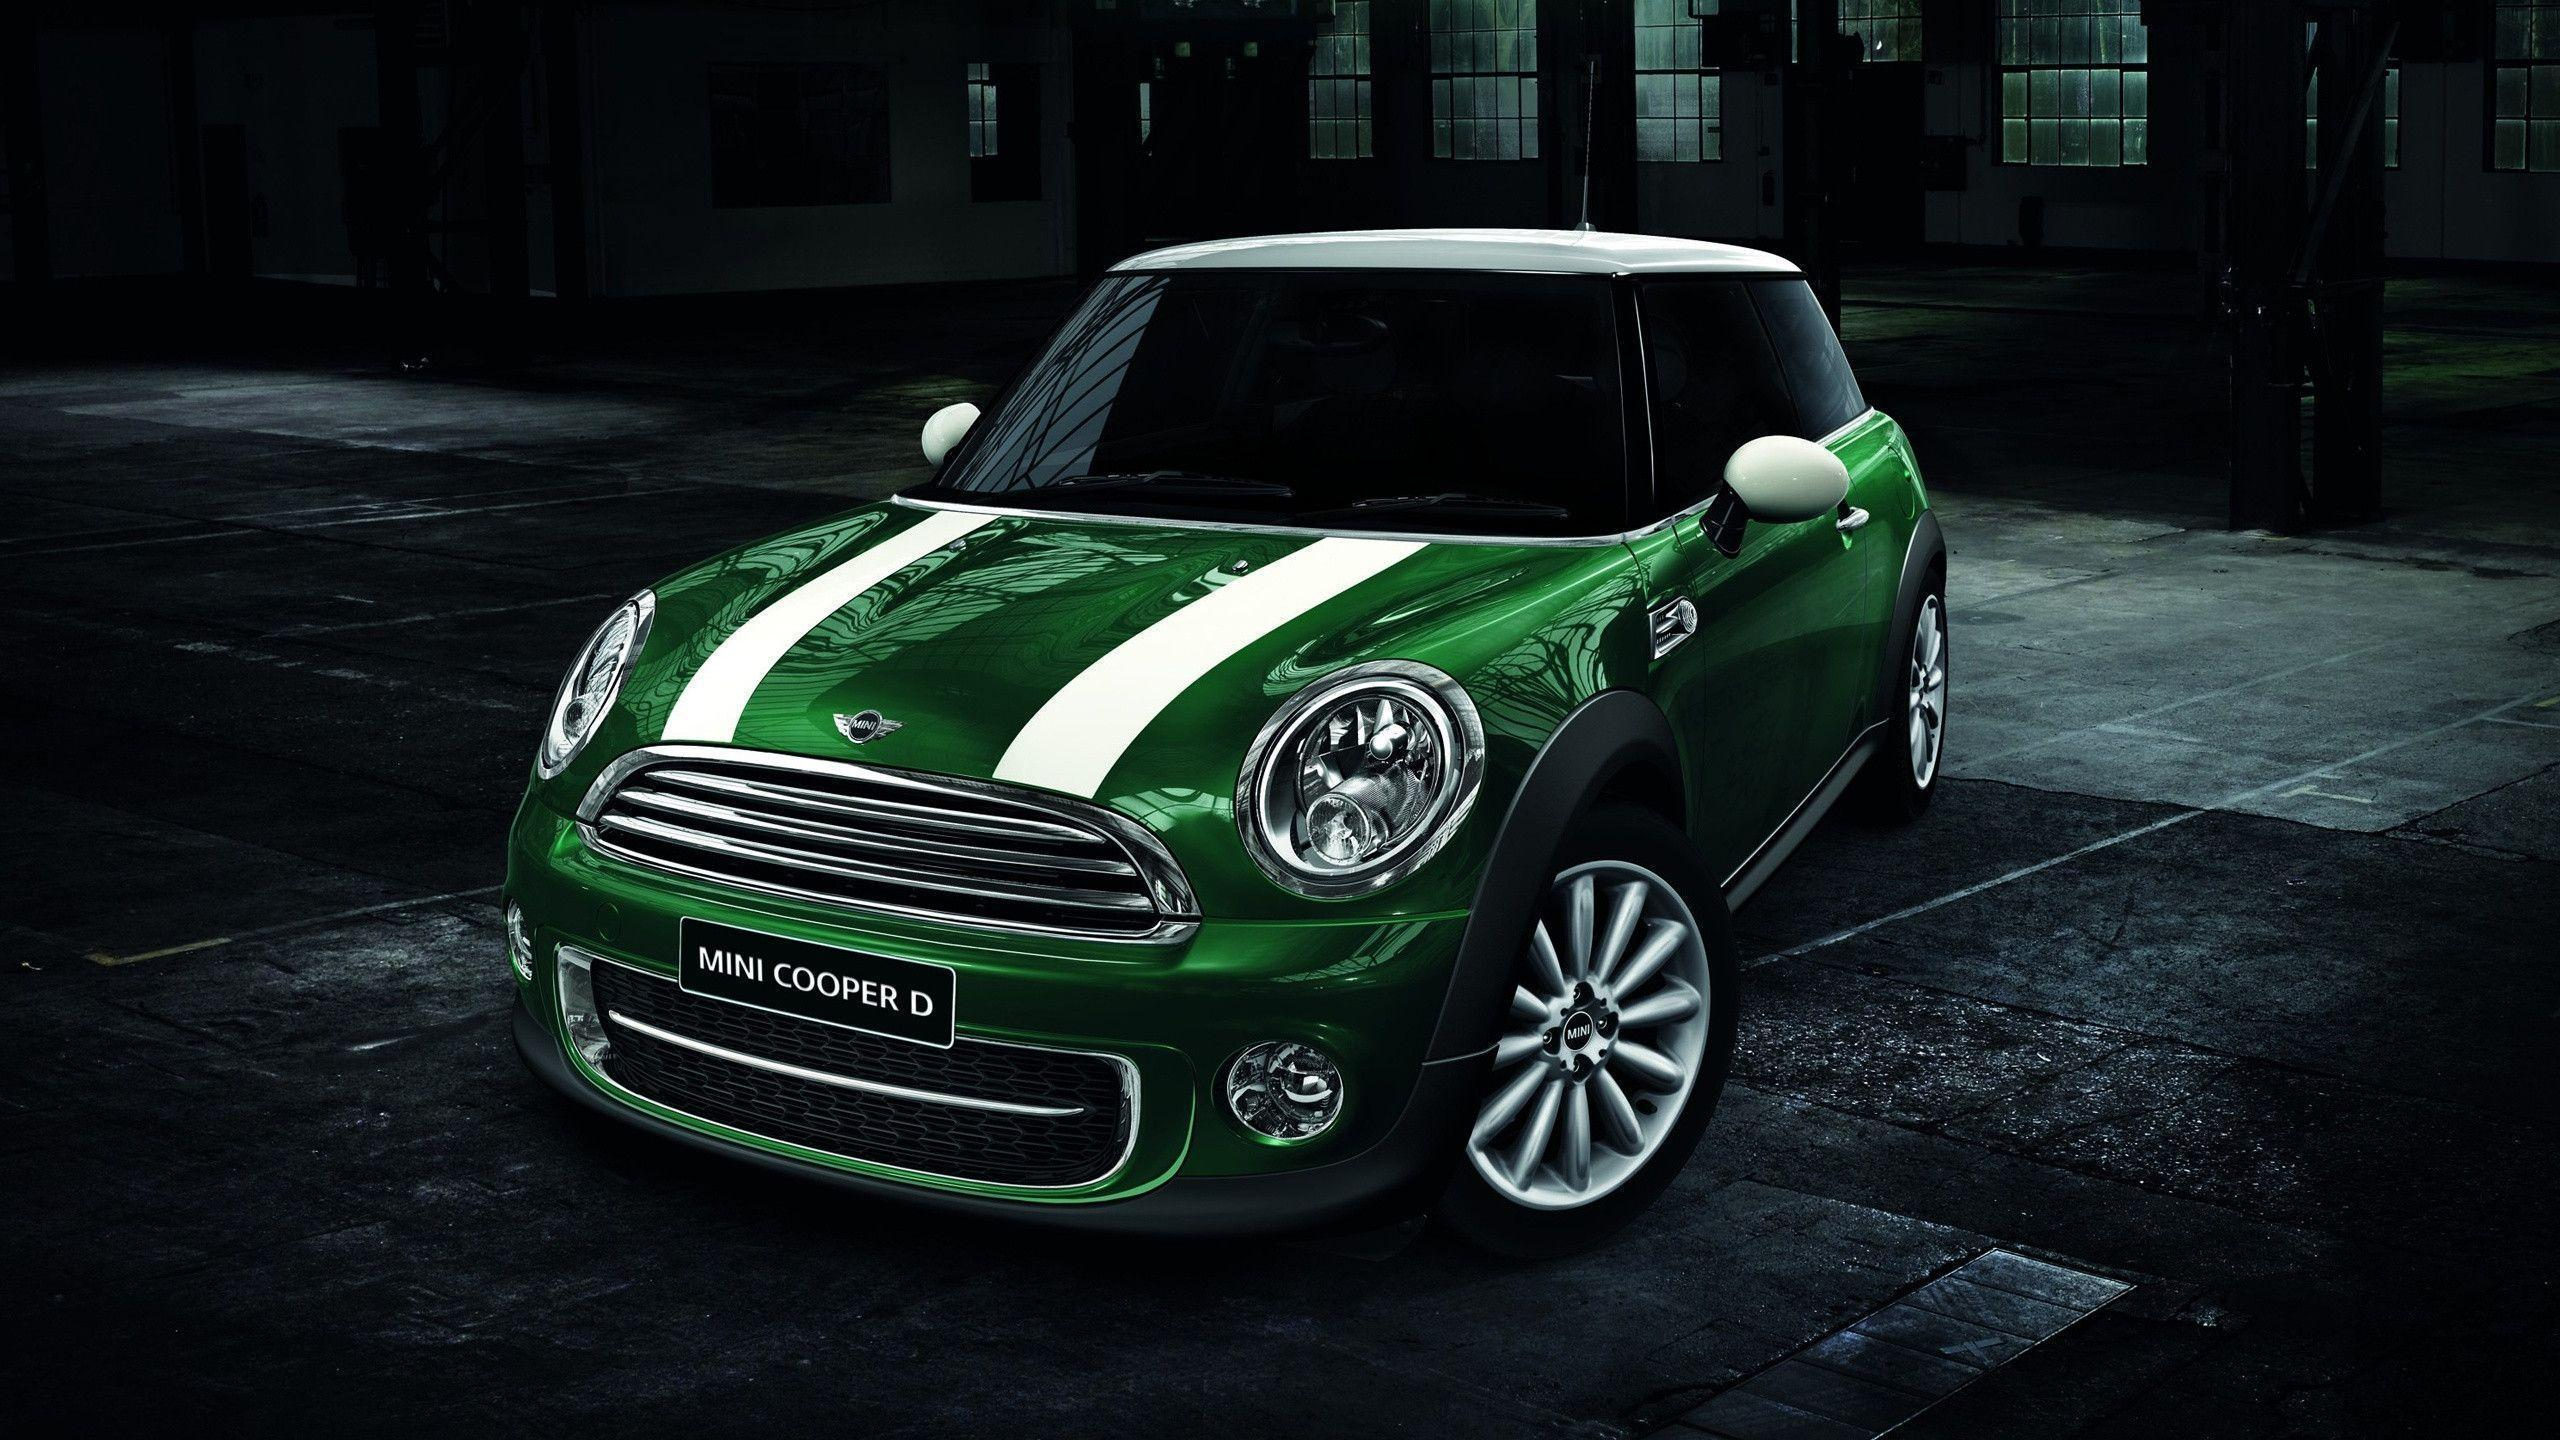 Mini Cooper D London Edition Wallpapers In 2560x1440 Resolution